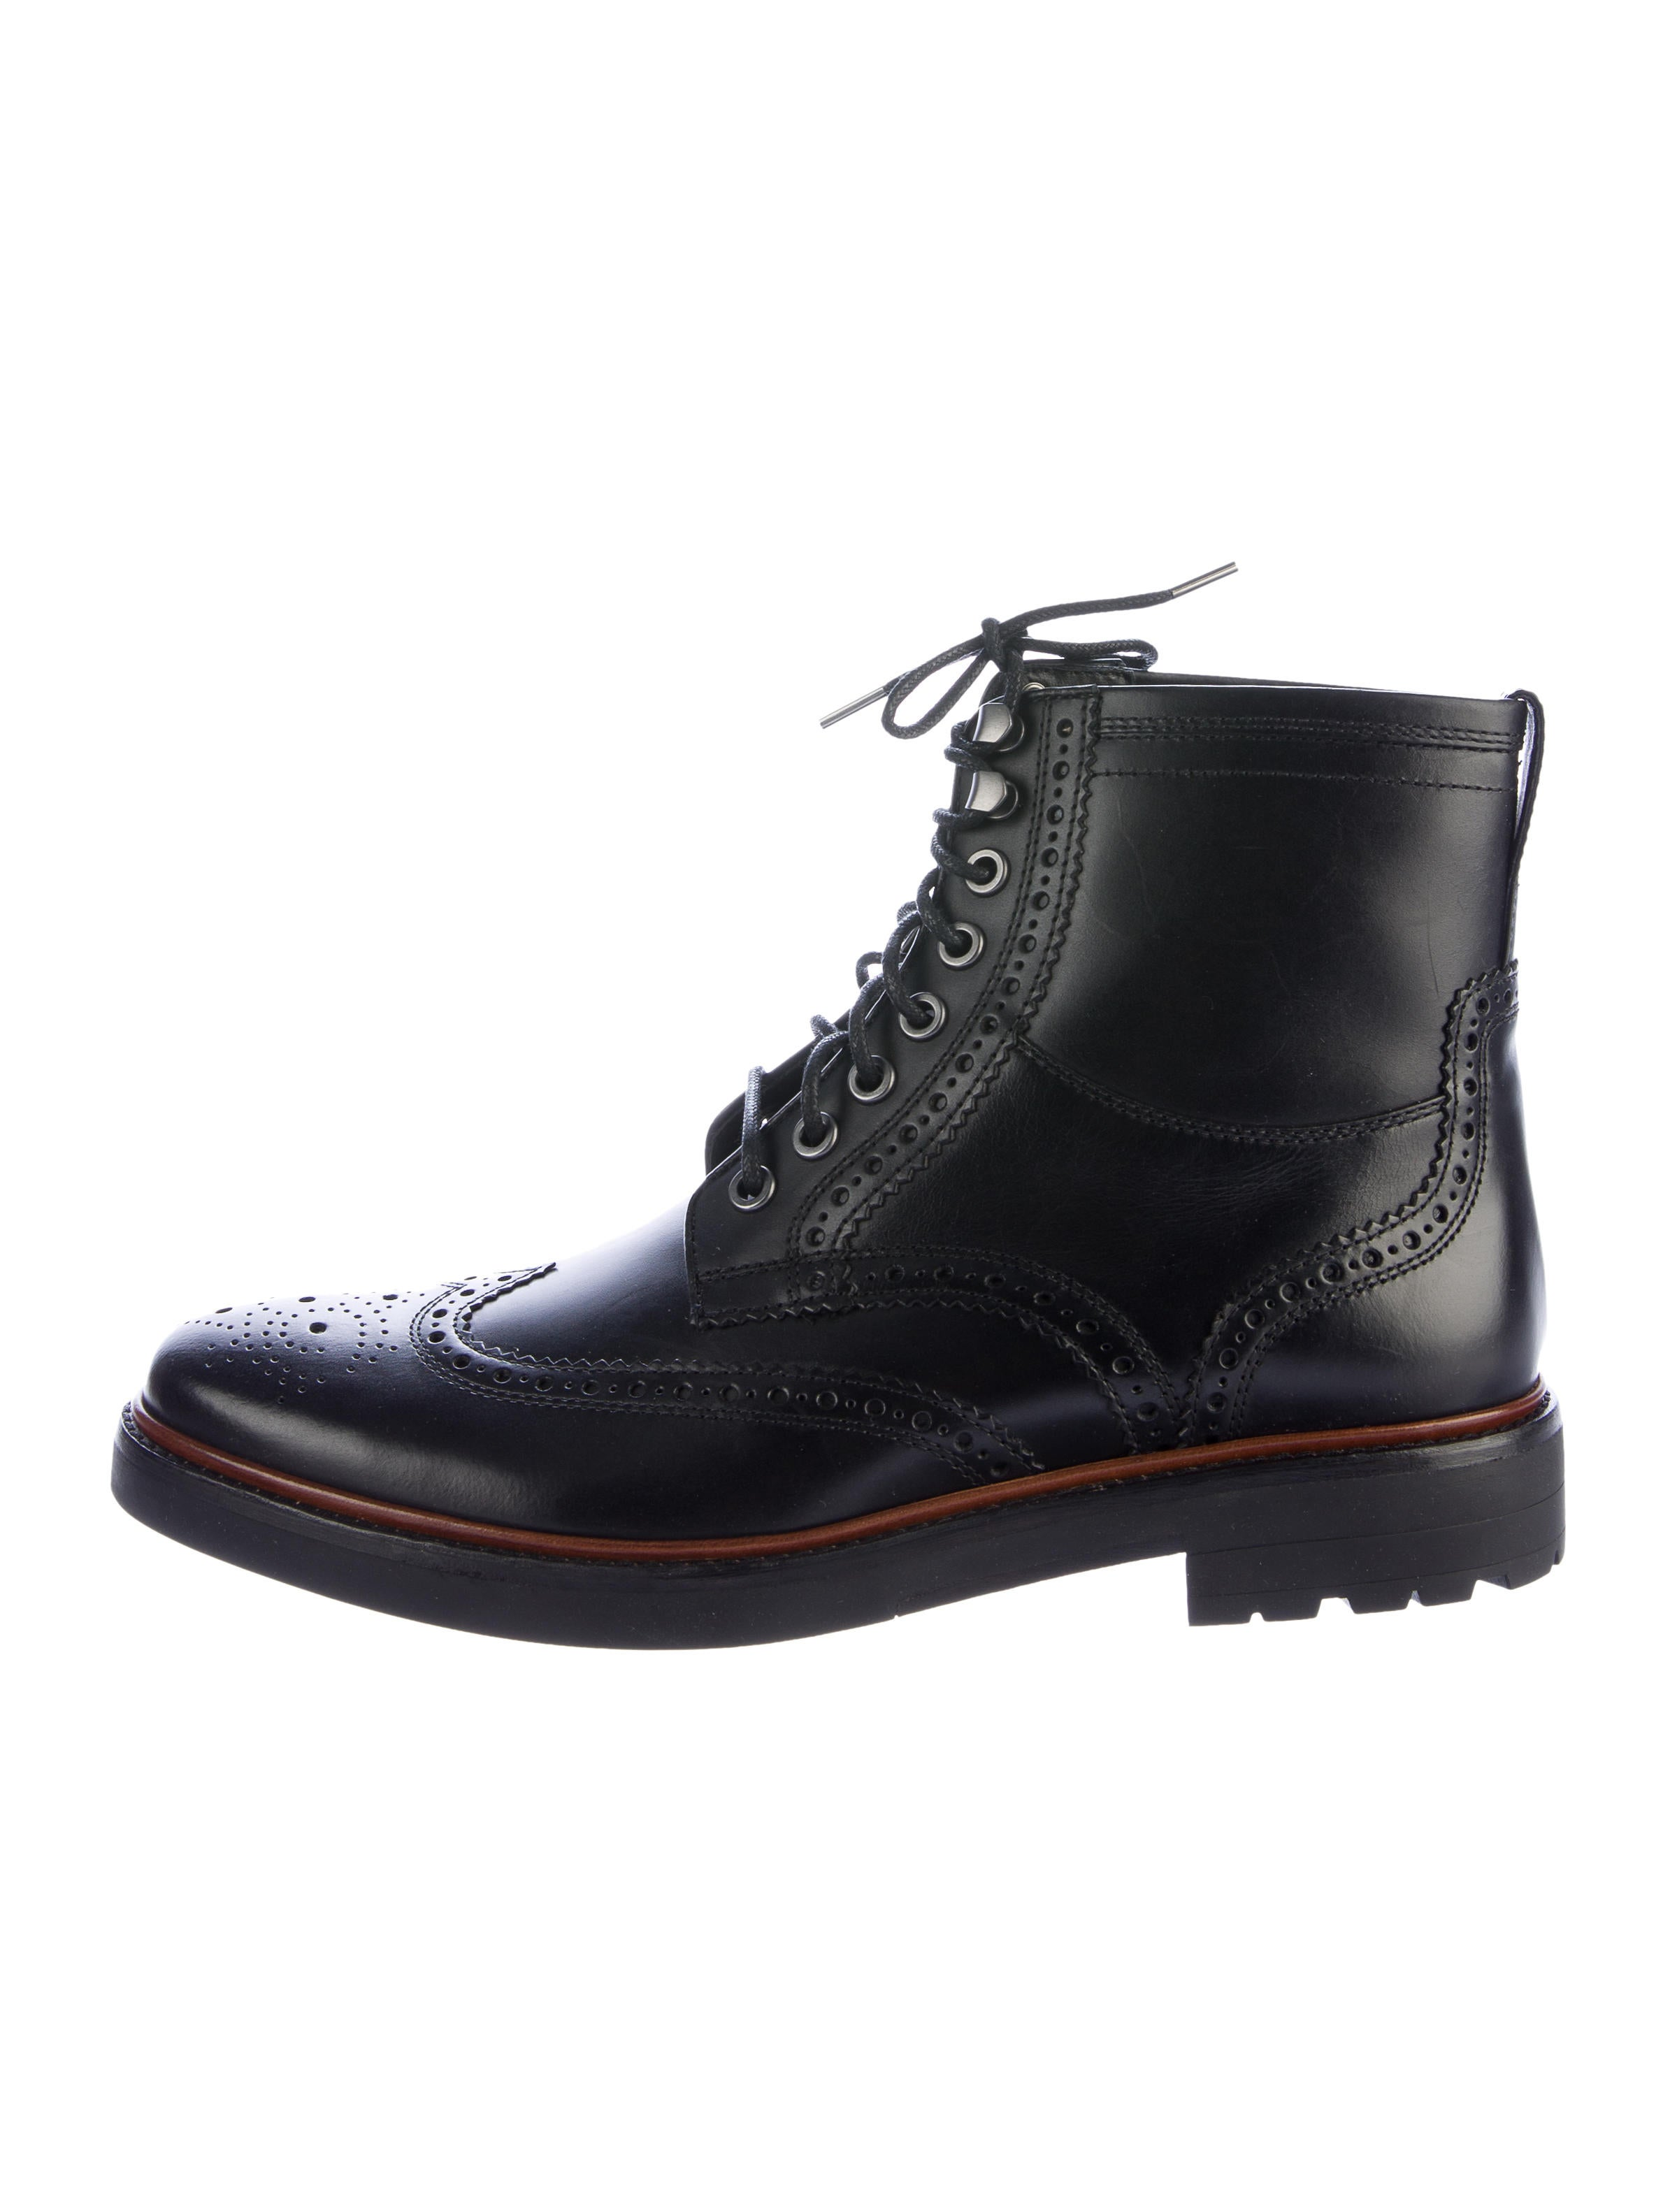 coach wingtip ankle boots w tags shoes cch20804 the